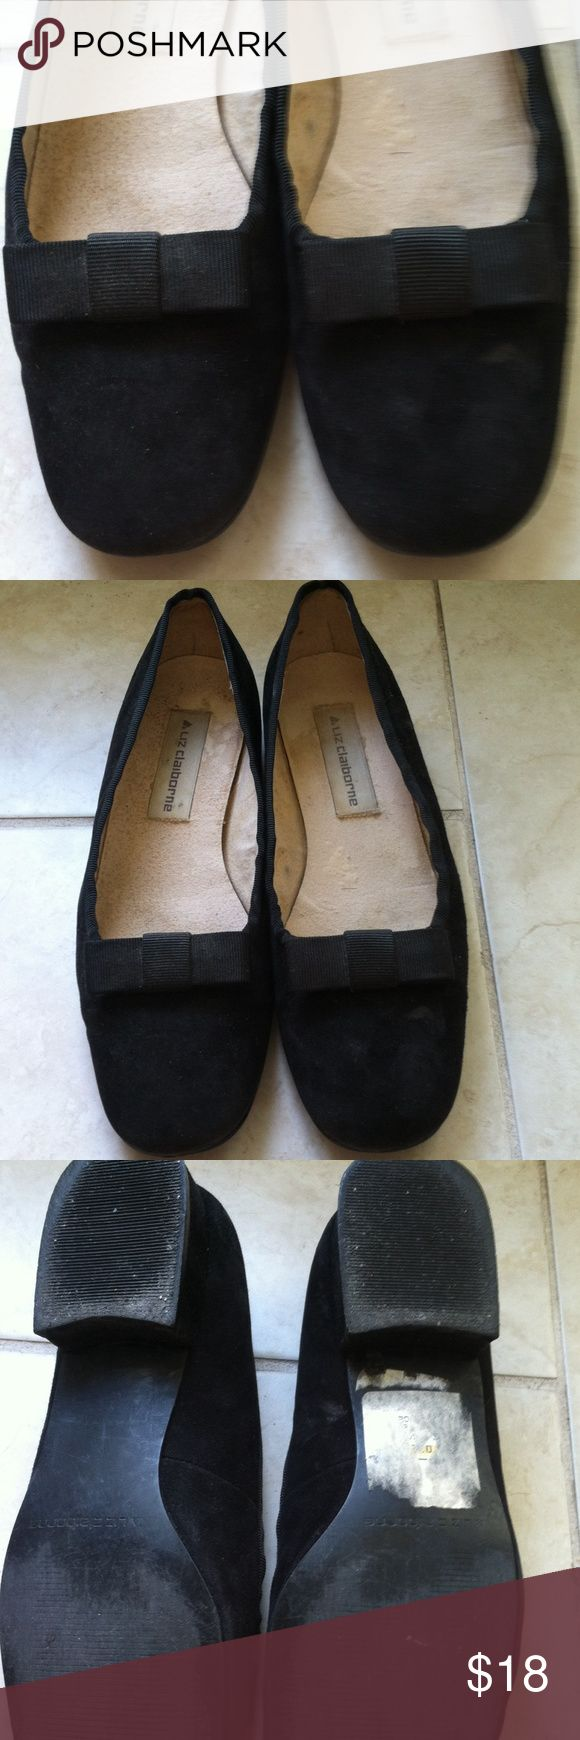 🎄Black suede shoes🎄 Black suede shoes with cute grosgrain bow in front. Has 0.5 inch heel. These are 7.5 but I wear a 7. Bought them because so cute! In good condition. Price firm unless bundled. Liz Claiborne Shoes Flats & Loafers